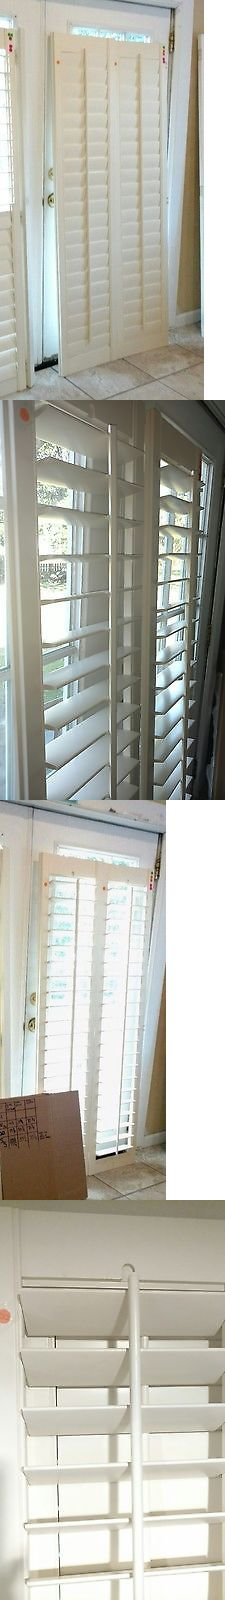 Shutters 66799: Interior Solid Wood Plantation Shutters 3.5 Louvers White  Linen 30.5 W 70.25 New